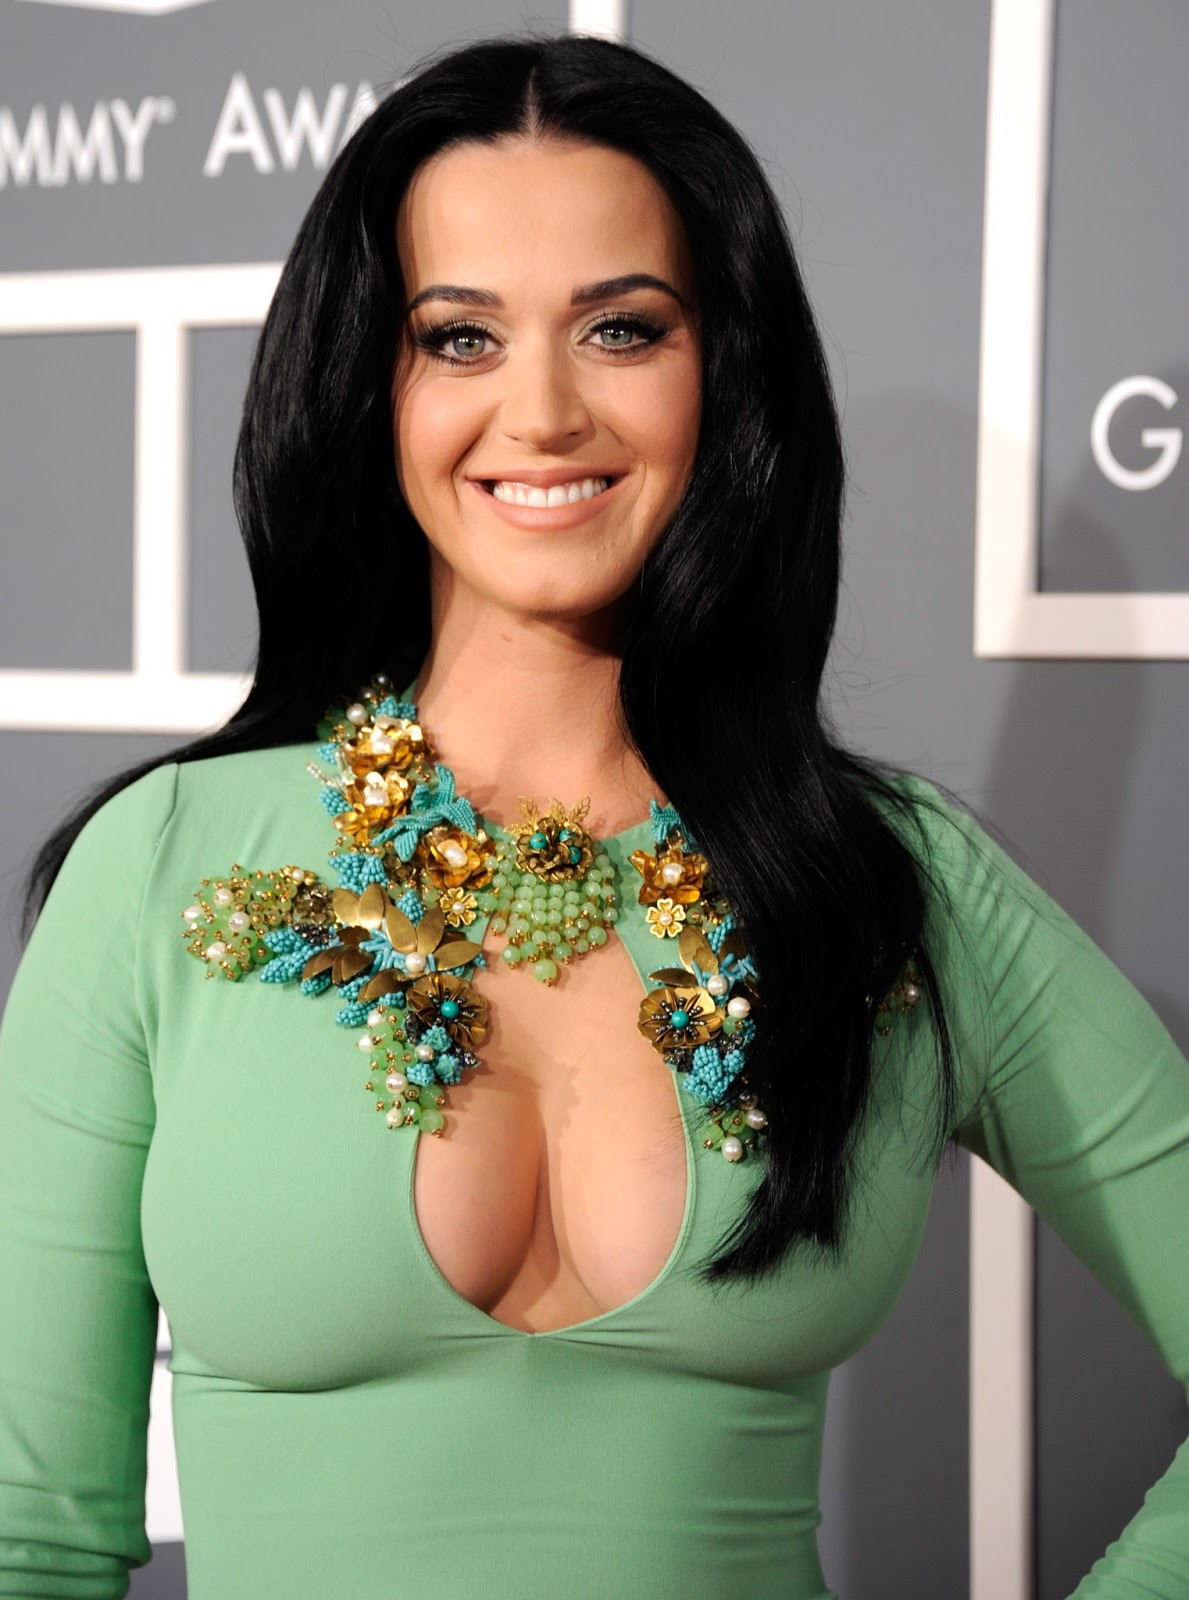 at the grammy awards katy perry stunned in an old hollywood inspired ...